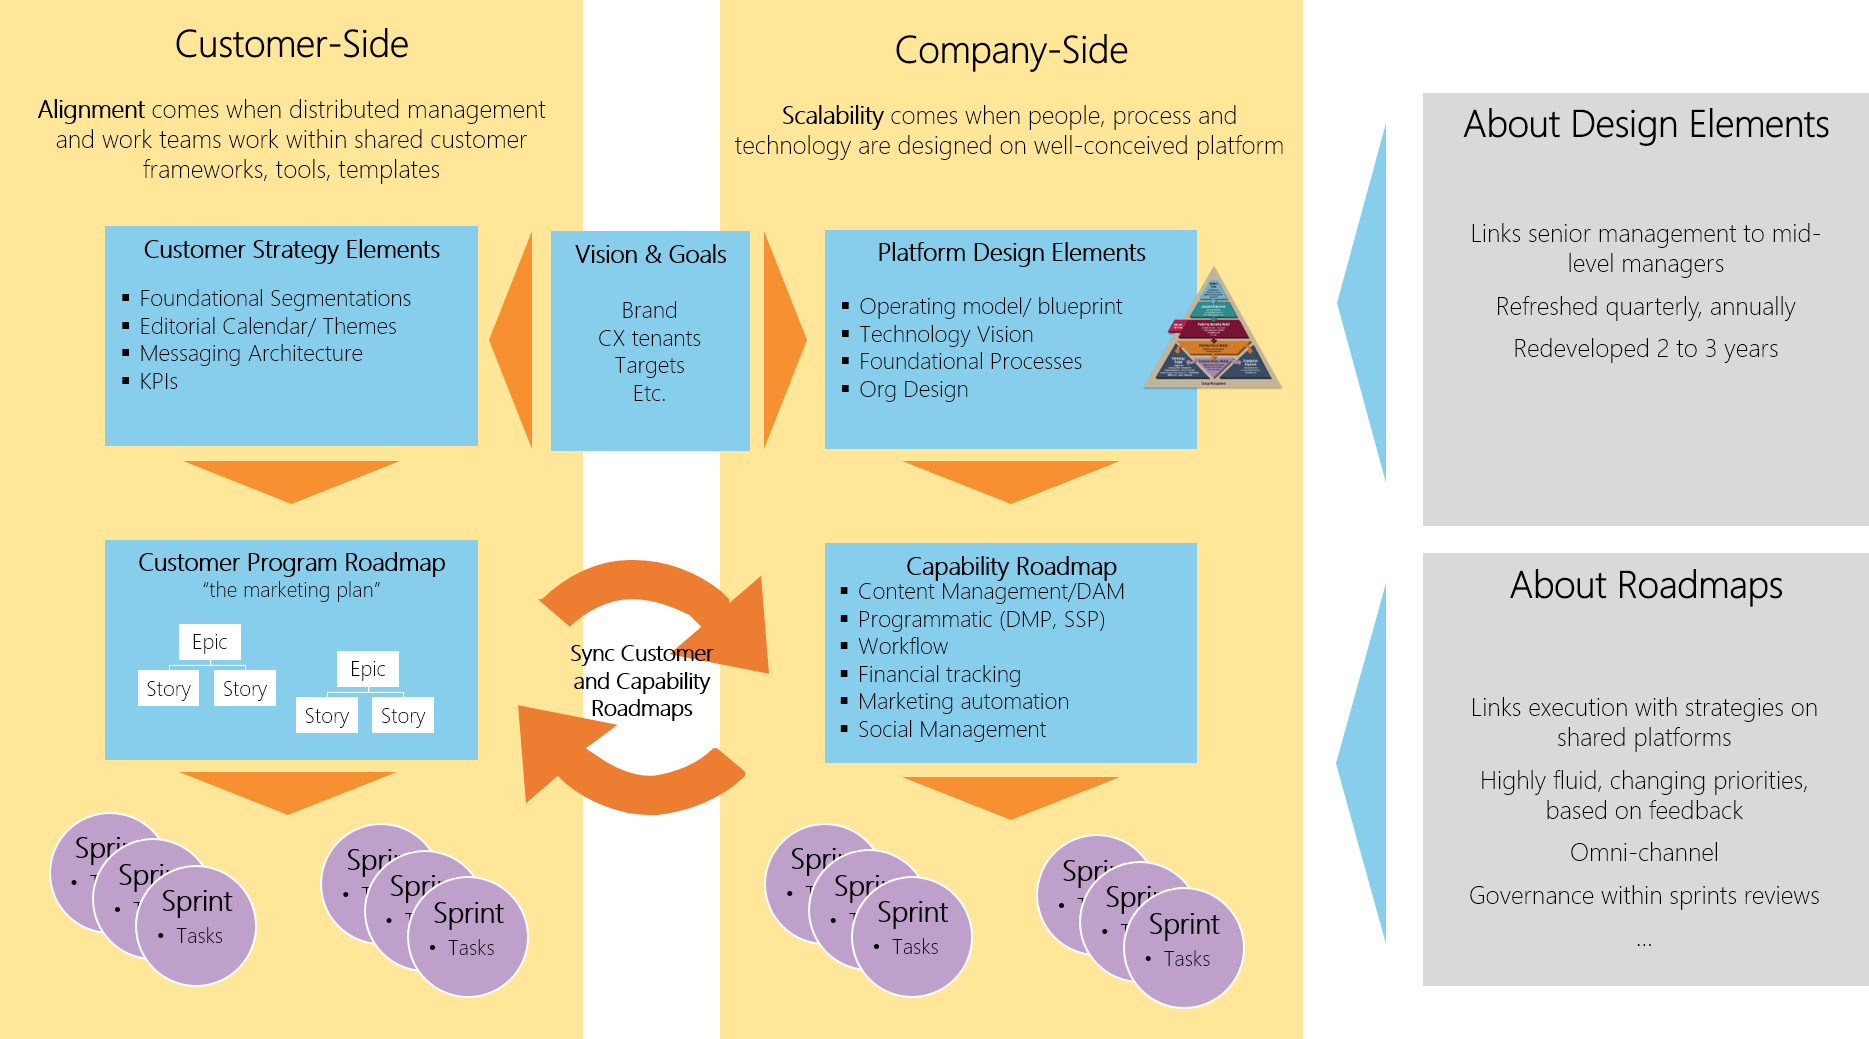 Methodology to achieve alignment and scale with Agile